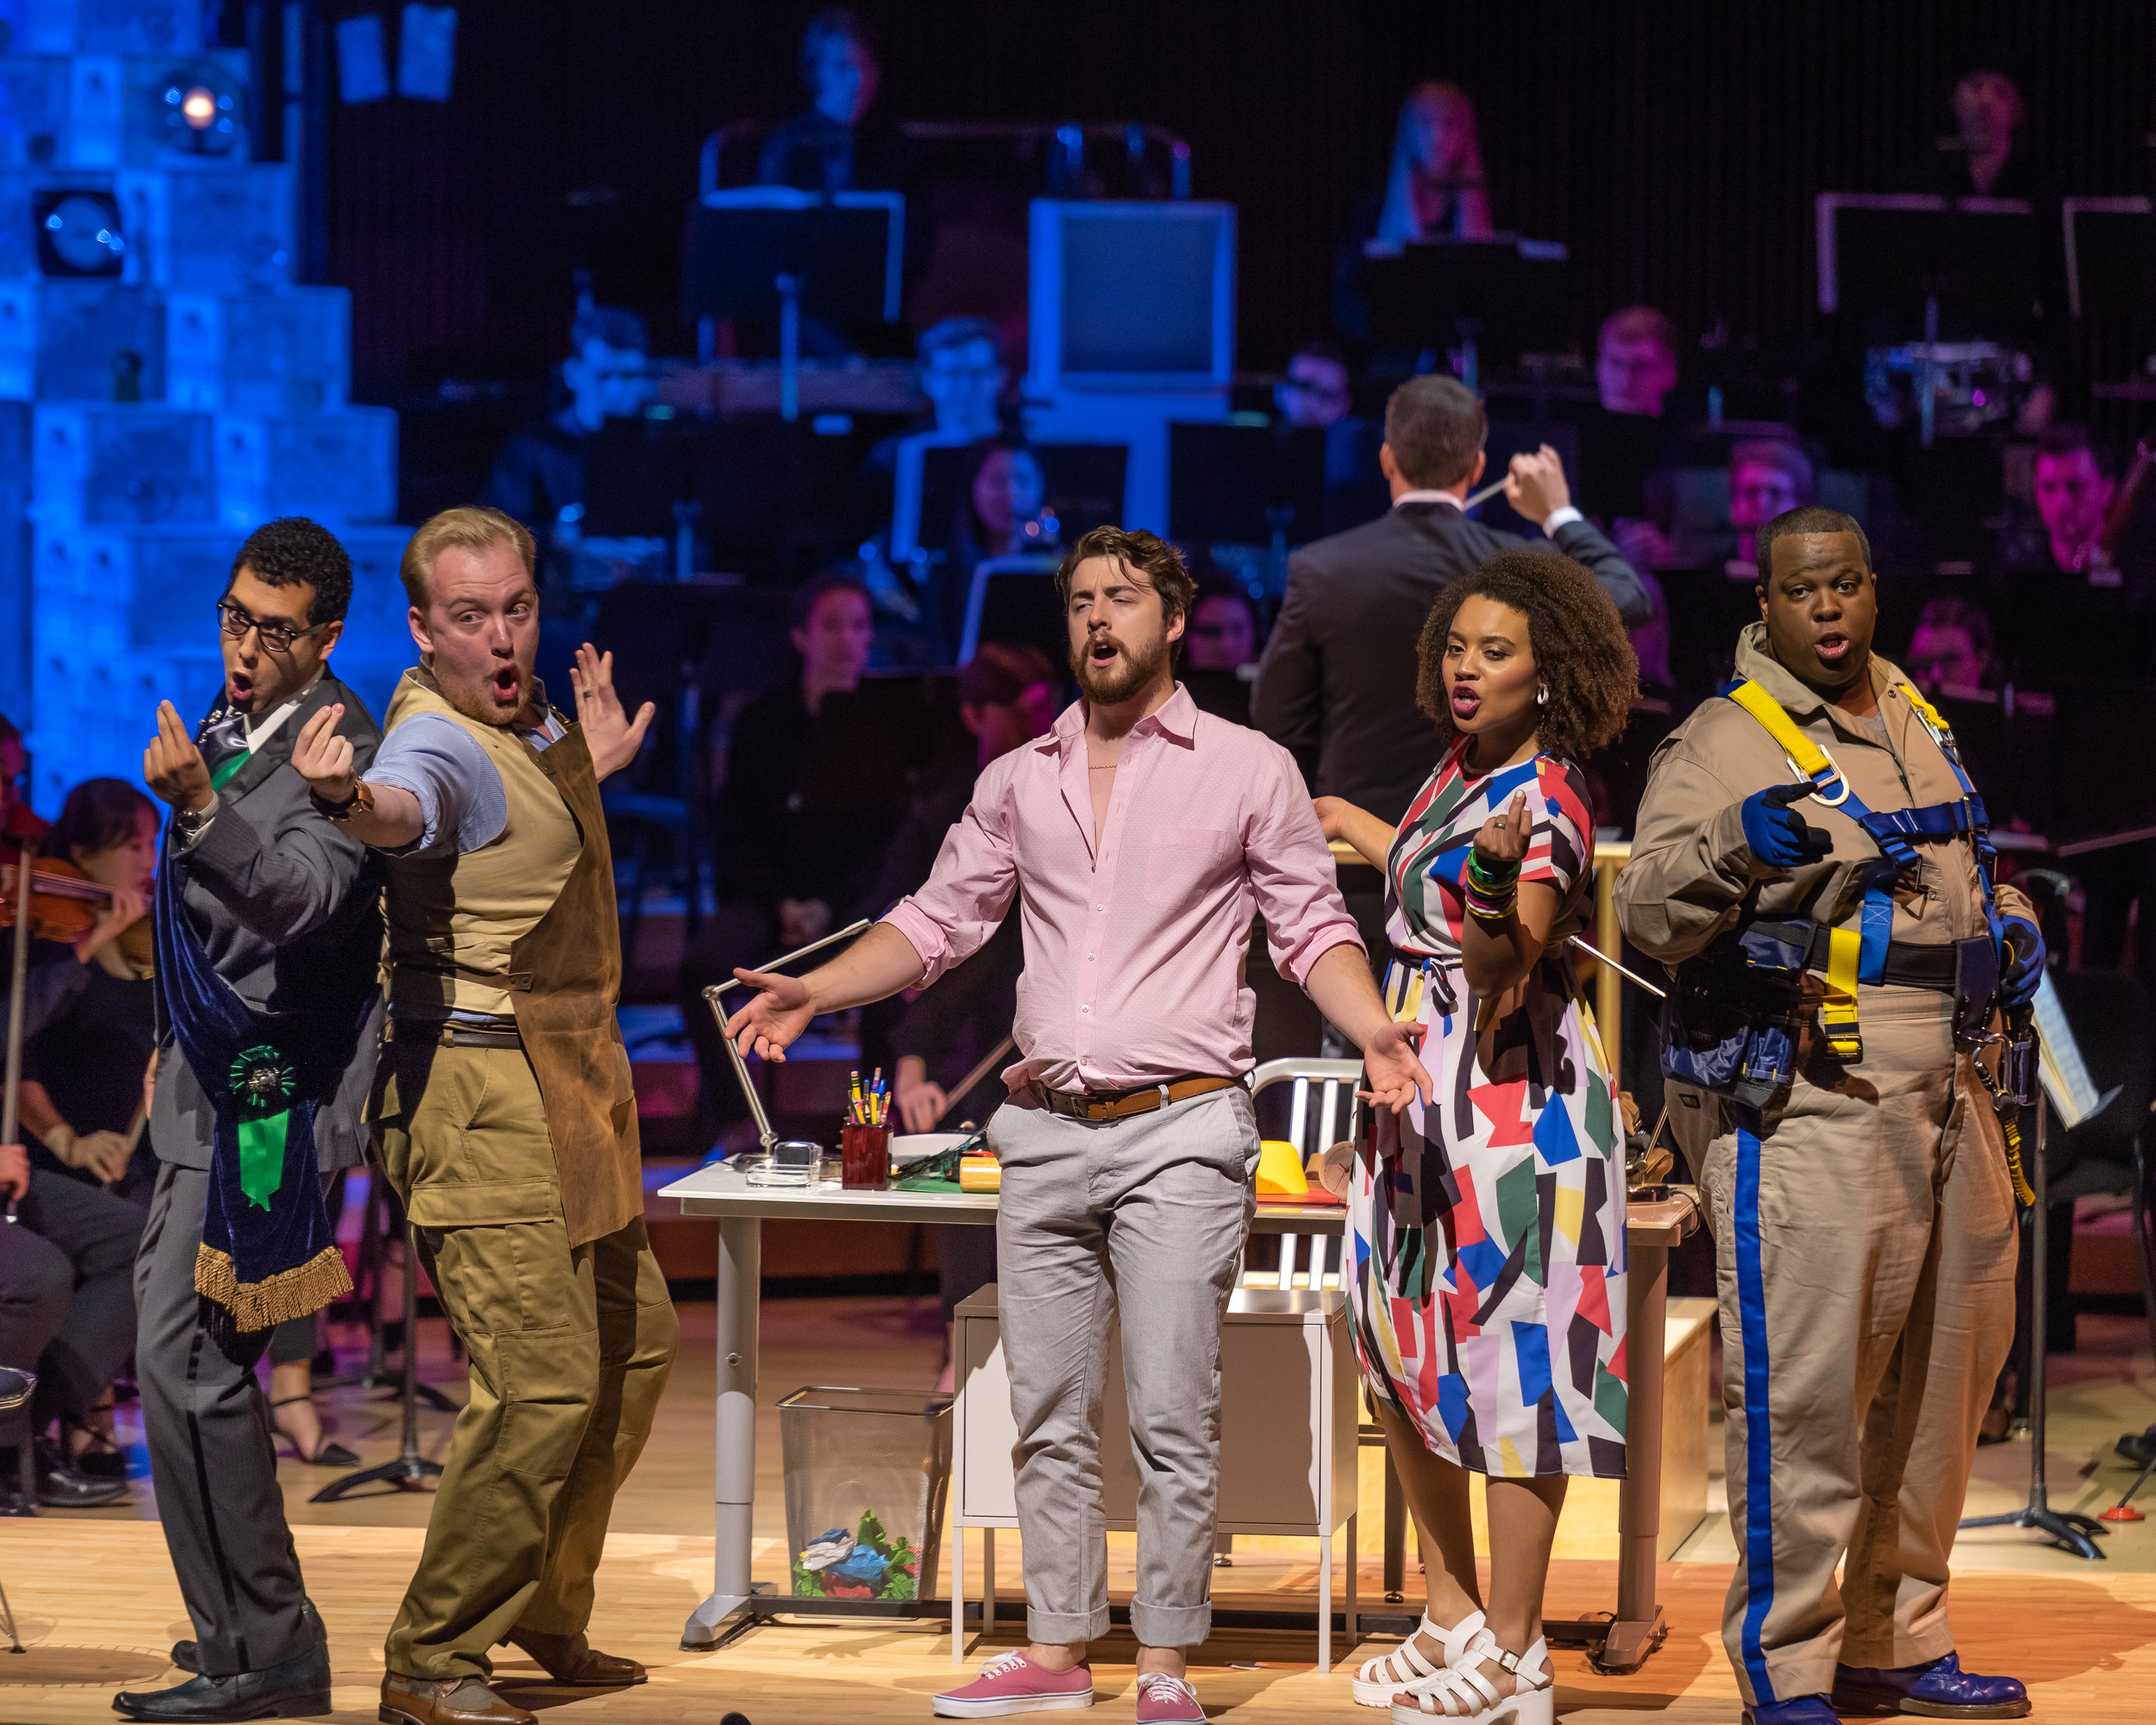 The finale quintet shows each player content, especially Concepcion (Taylor Raven), in line with Don Iñigo (Calvin Griffith), Torquemada (Ian Koziara), Gonsalve (Joshua Lovell), and Ramiro (Joahua Conyers. Photo by Rob Wallace/MIndful Photo; courtesy of Wolf Trap Opera.